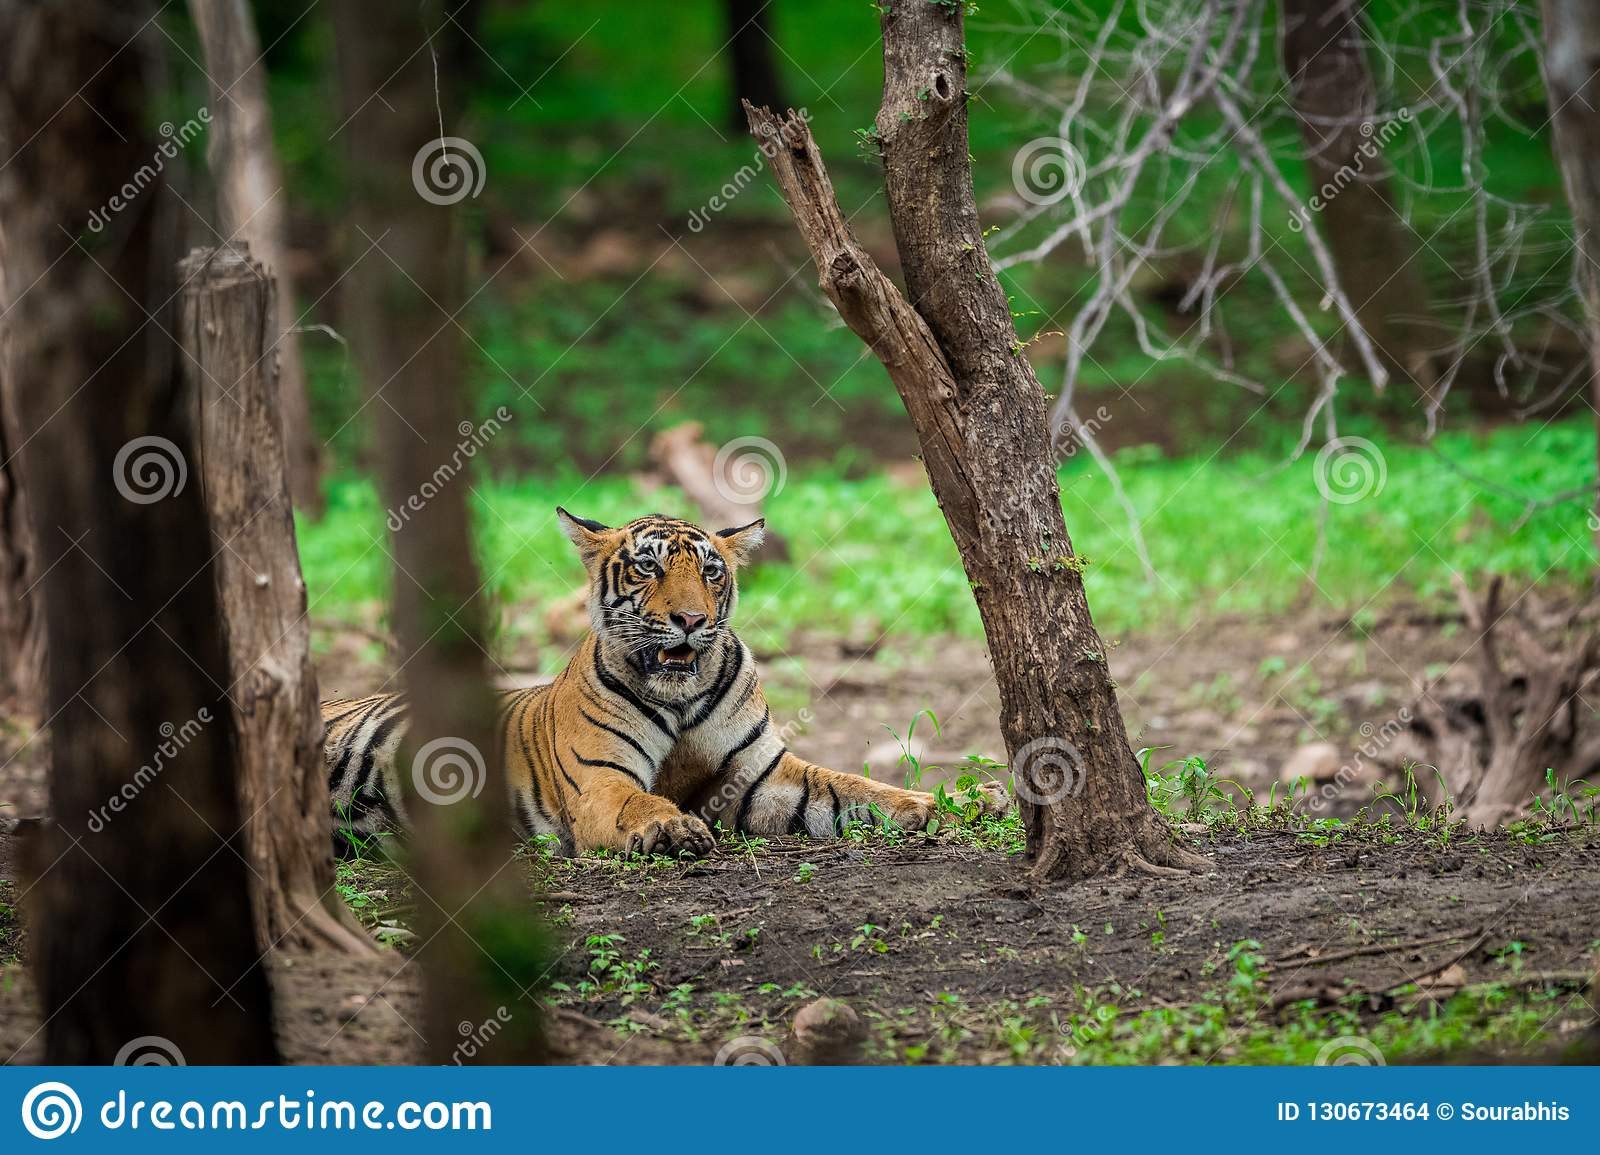 A male tiger cub relaxing in nature when forest converted in a green carpet at ranthambore tiger reserve, India